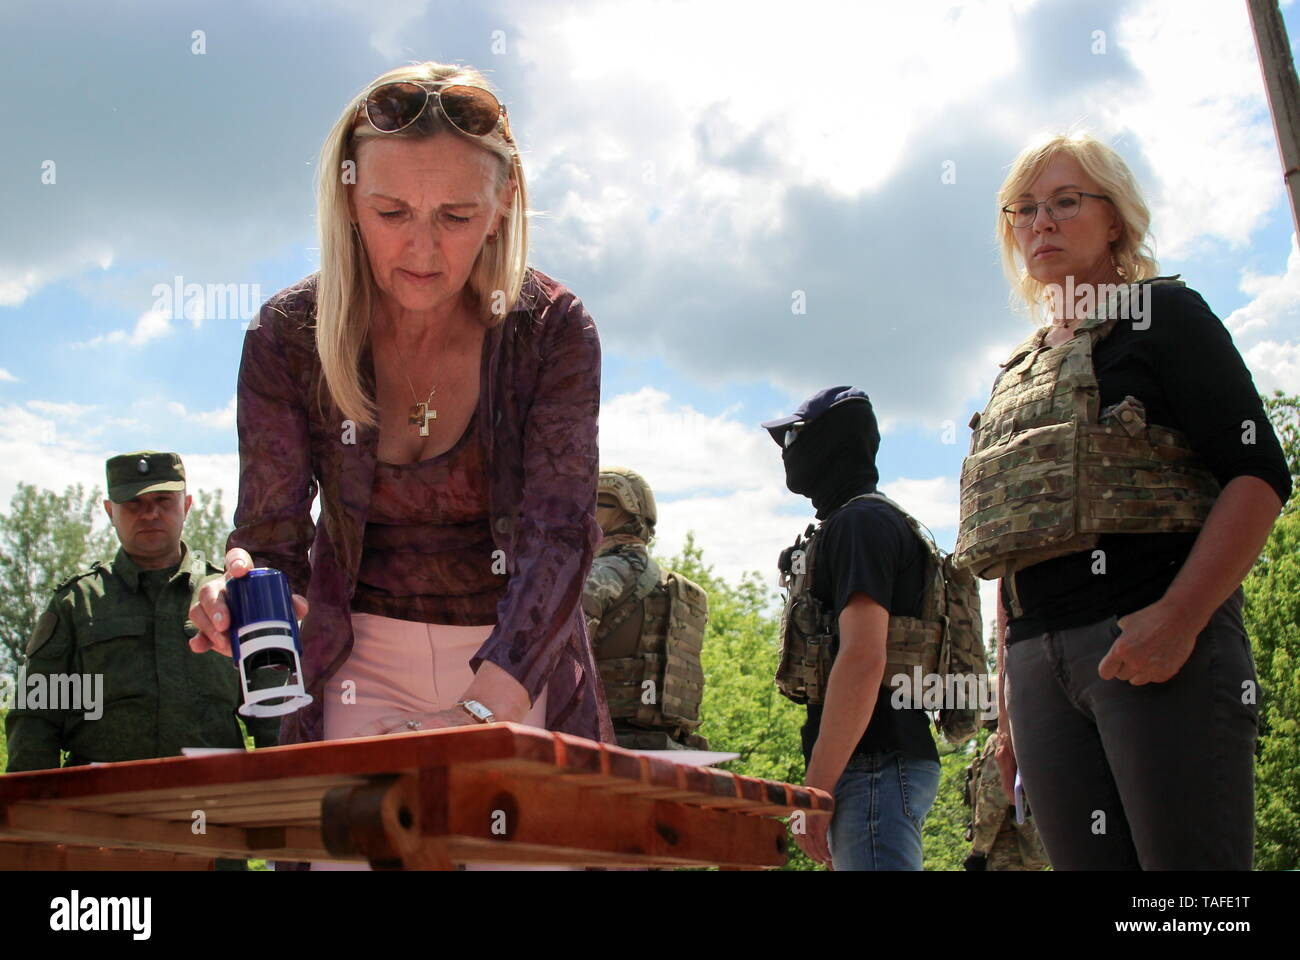 Ukraine. 24th May, 2019. LUGANSK REGION, UKRAINE - MAY 24, 2019: Olga Kobtseva representing the Lugansk People's Republic in the humanitarian subgroup of the Trilateral Contact Group on Ukraine, and Lyudmyla Denisova (L-R front), Ukraine's Commissioner for Human Rights, meet as the republic transfers 60 prisoners convicted before the 2014 Ukrainian crisis, to Ukraine. Alexander Reka/TASS Credit: ITAR-TASS News Agency/Alamy Live News - Stock Image